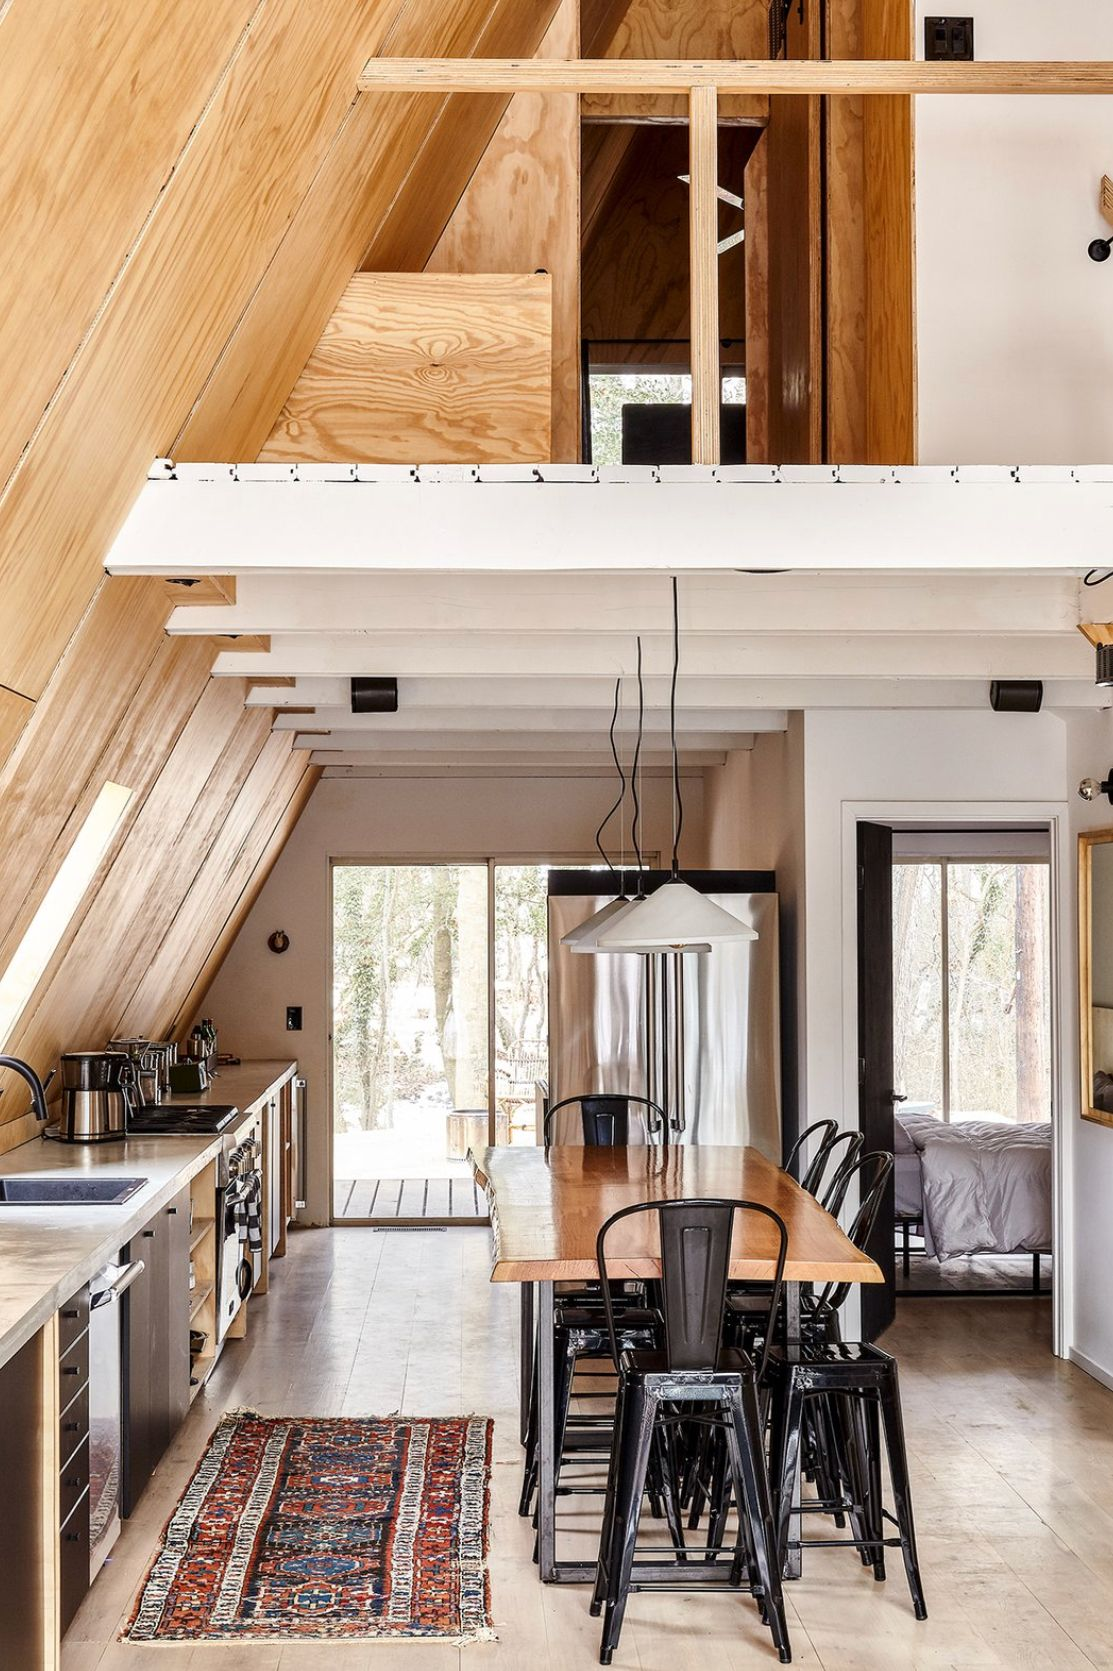 Summer House Interior Design Ideas From Berlin: Light And Airy Kitchen, Tons Of Light, Lots Of Counter Space